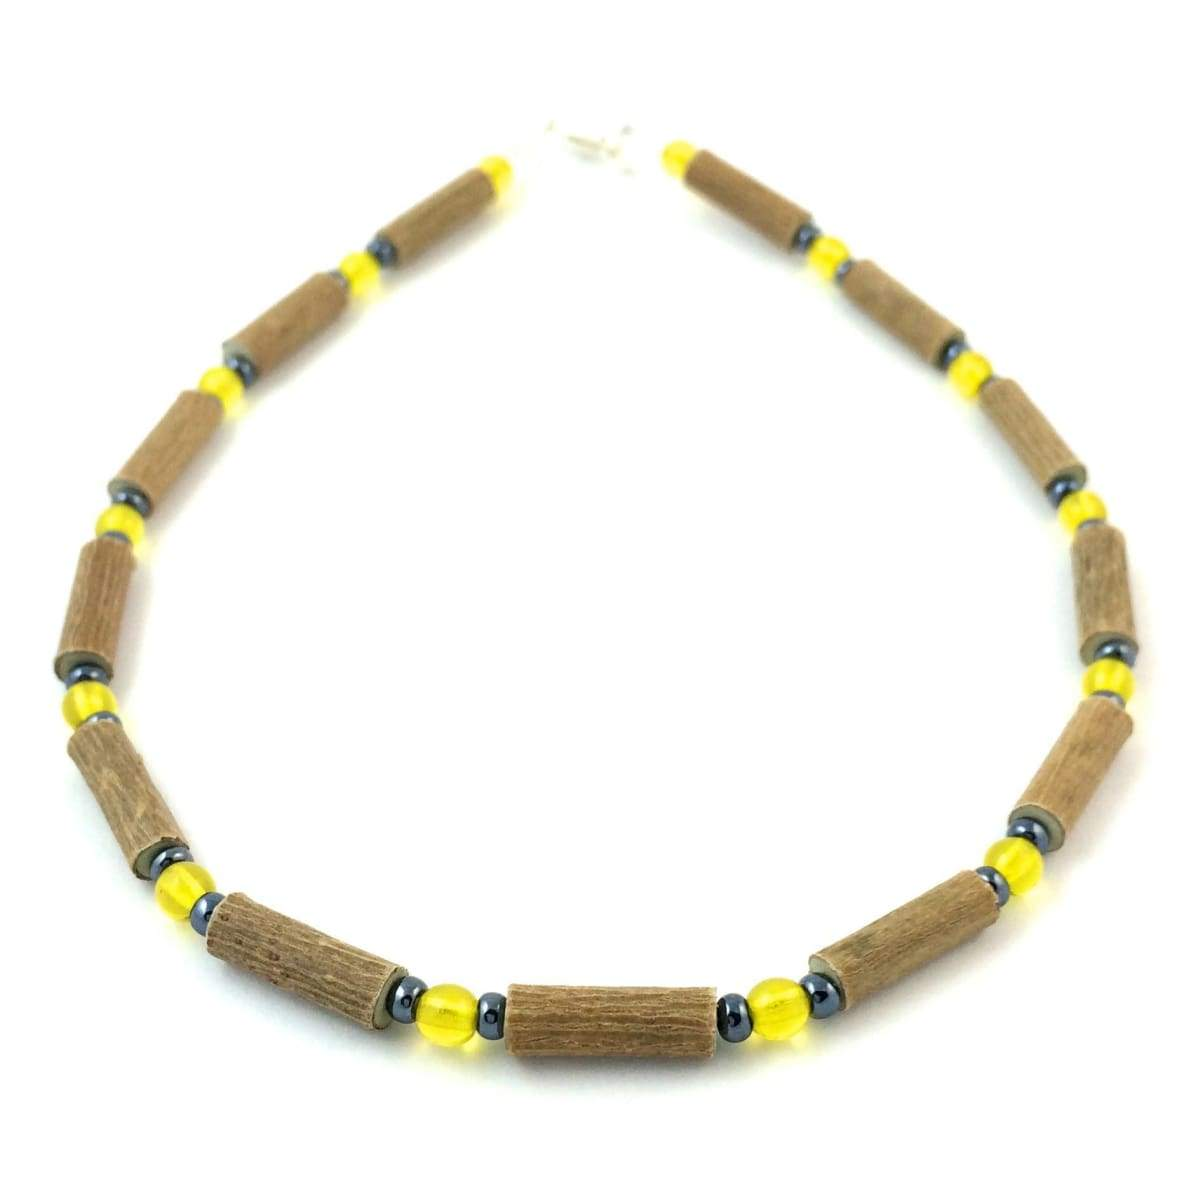 Hazelwood Yellow & Hematite - 11 Necklace - Lobster Claw Clasp - Hazelwood Jewelry